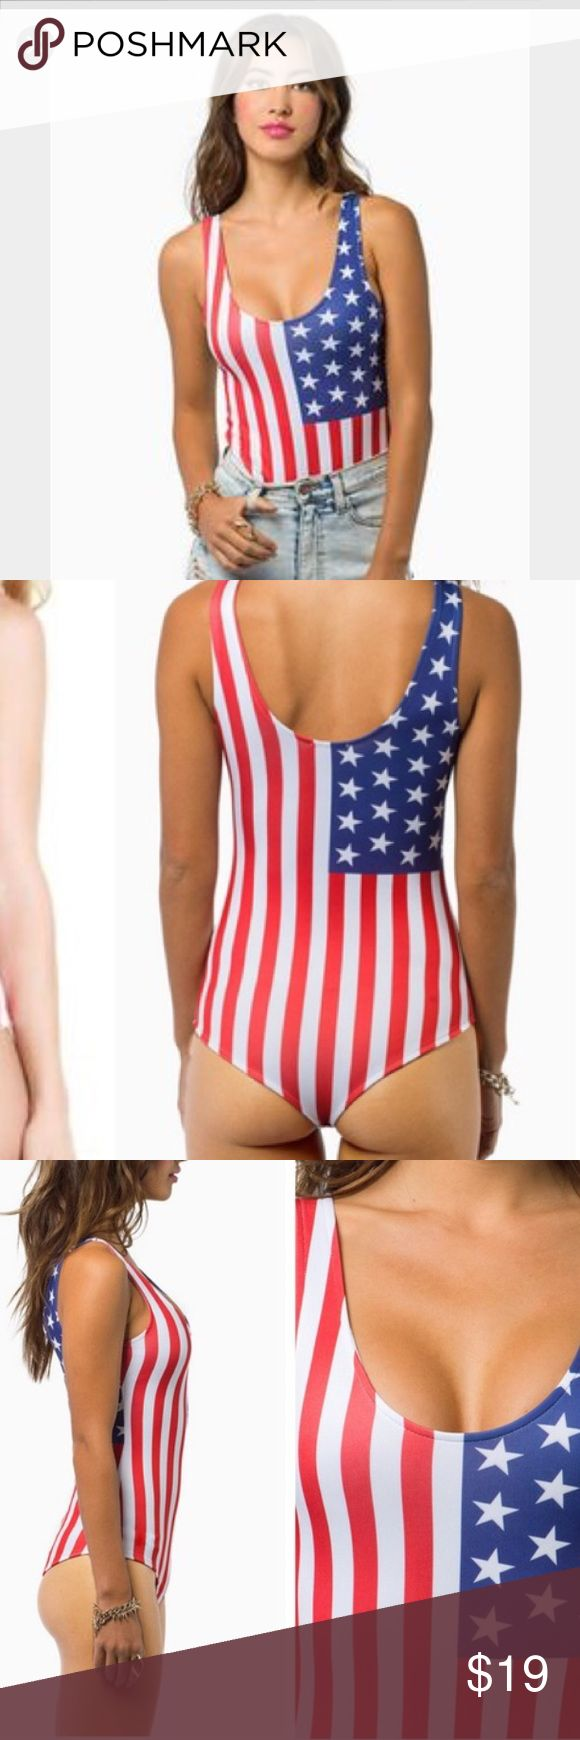 American Flag Bodysuit! Coachella Festival Wear! This bodysuit is printed with the American flag on it. It's super festive and fun! It has minor fuzzing in the booty part from sitting on the ground at a festival, but that part gets covered anyway, and is in otherwise great condition. Only worn once. It's not really a bathing suit, I just didn't know what else to categorize it as. Tobi Swim One Pieces